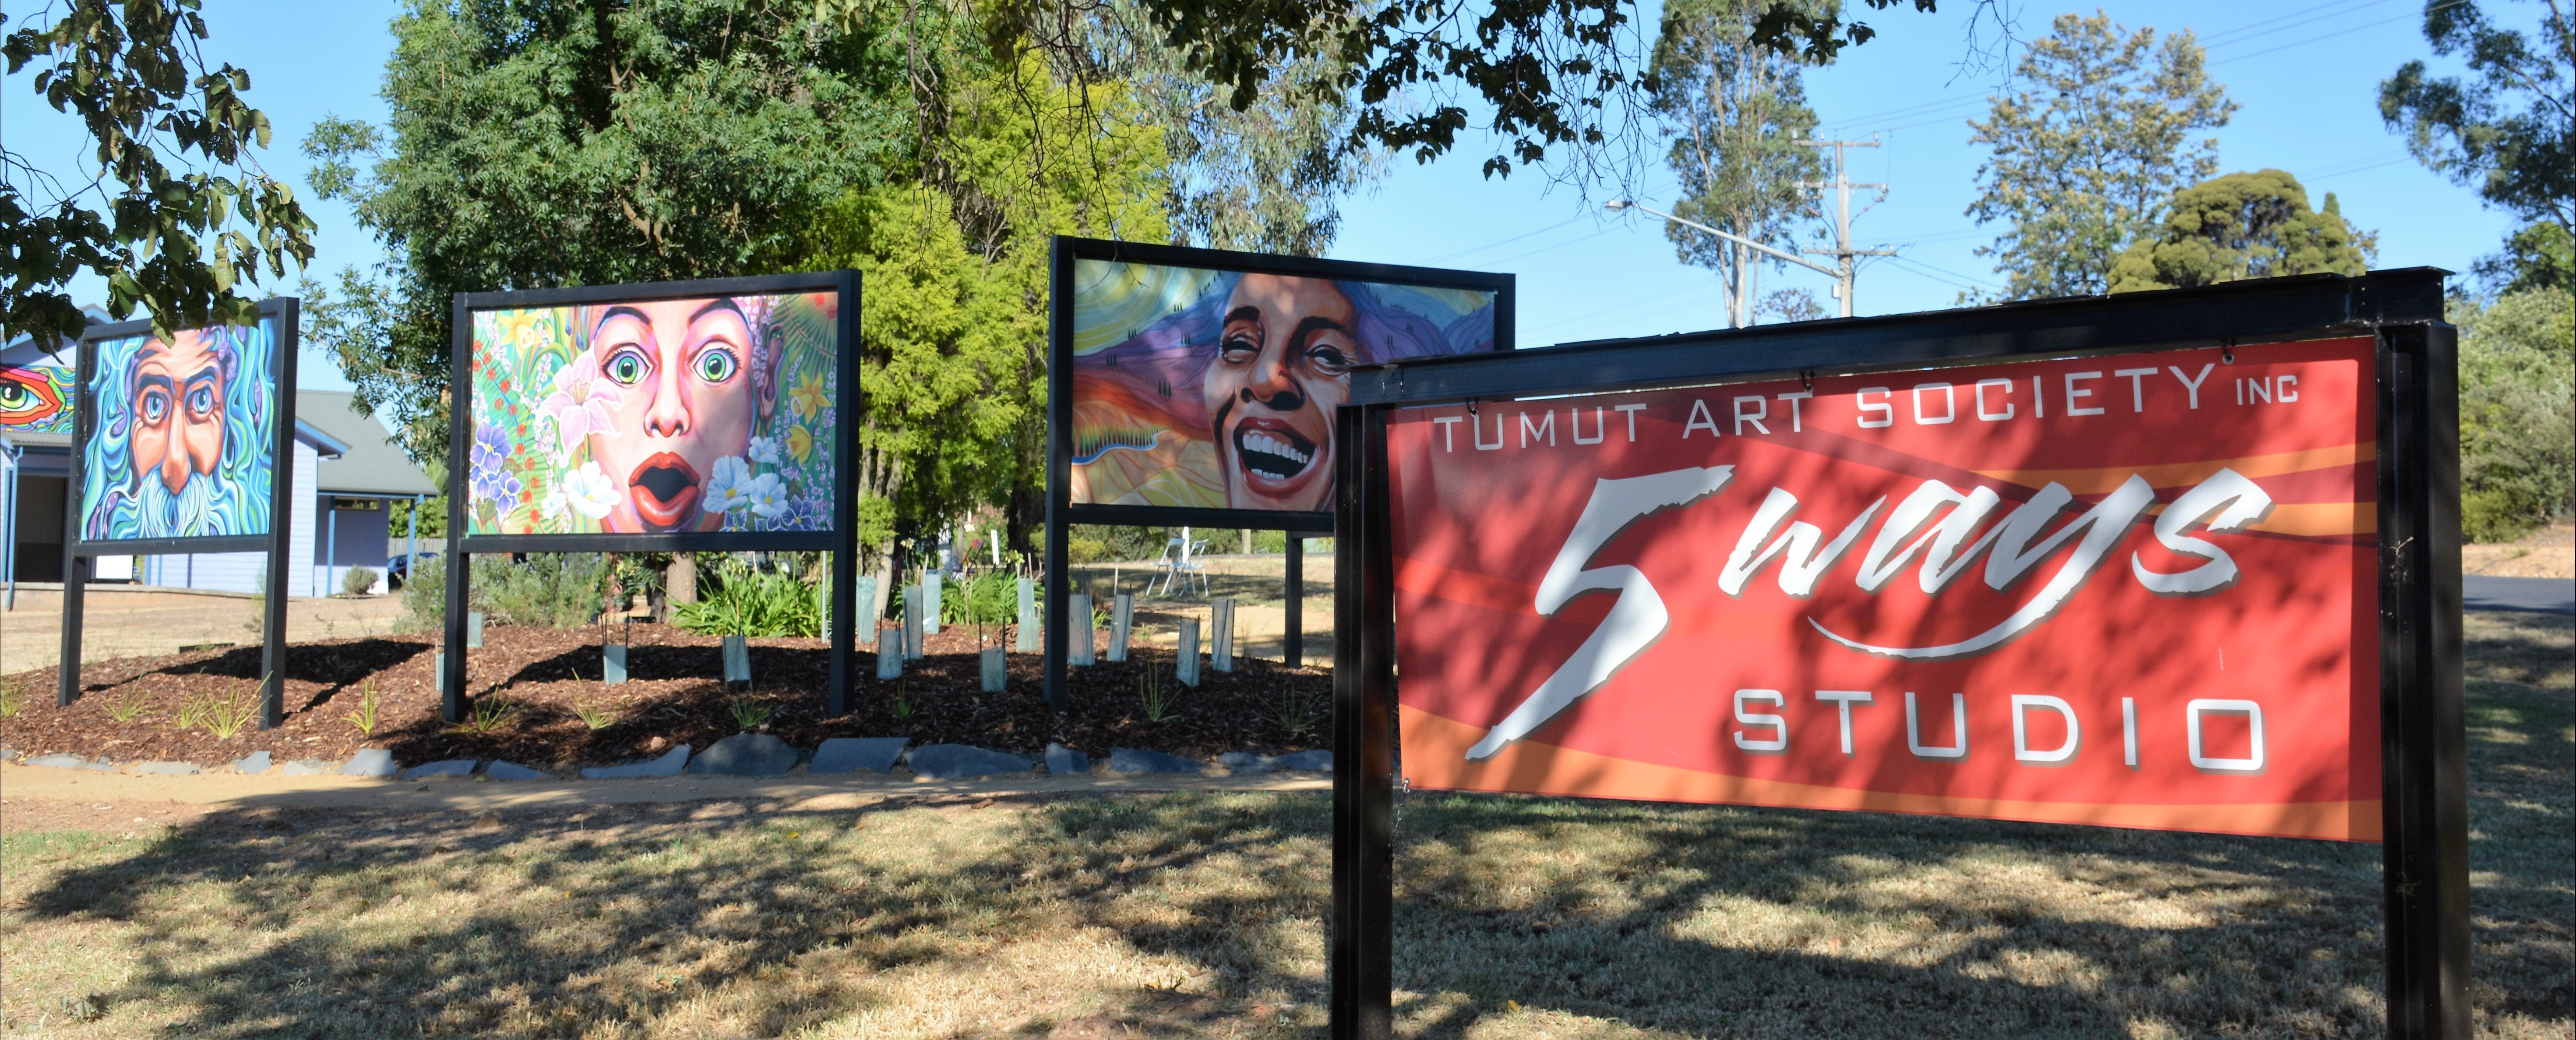 Tumut Art Society 5Ways Gallery - Accommodation Tasmania